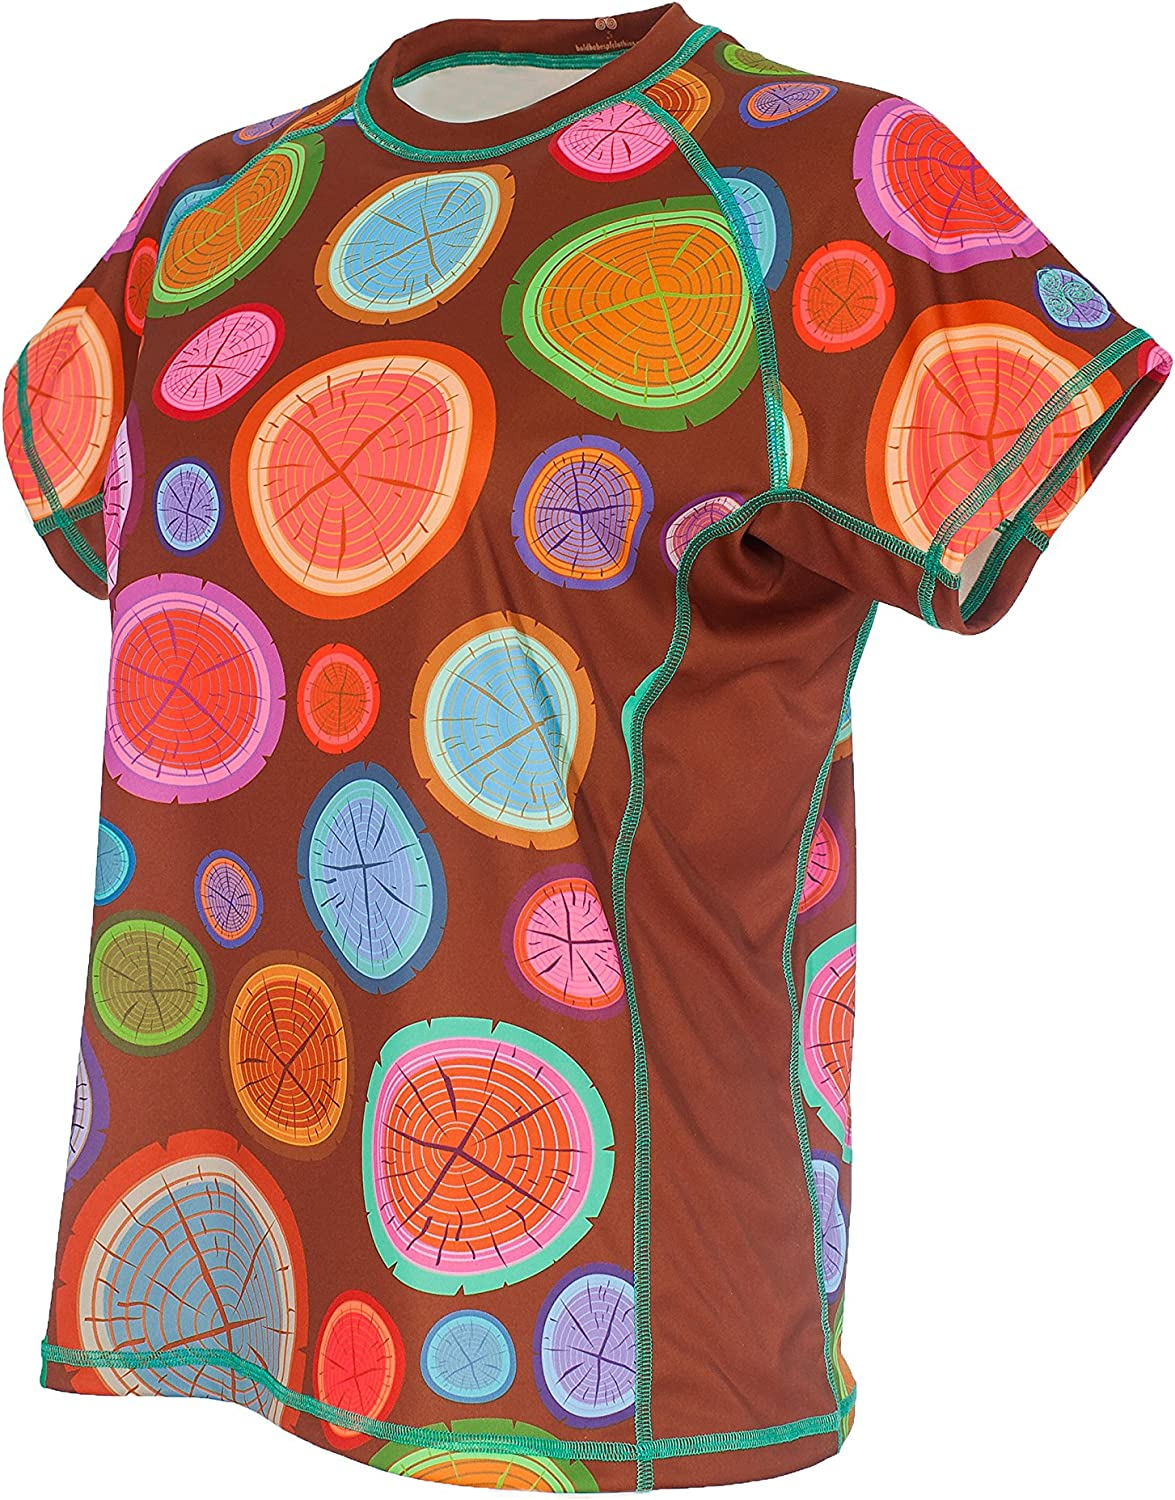 The Wood Pile Bold Babe Womens Sun Protective Short Sleeve Shirt SPF Clothing Perfect for Enjoying The Outdoors